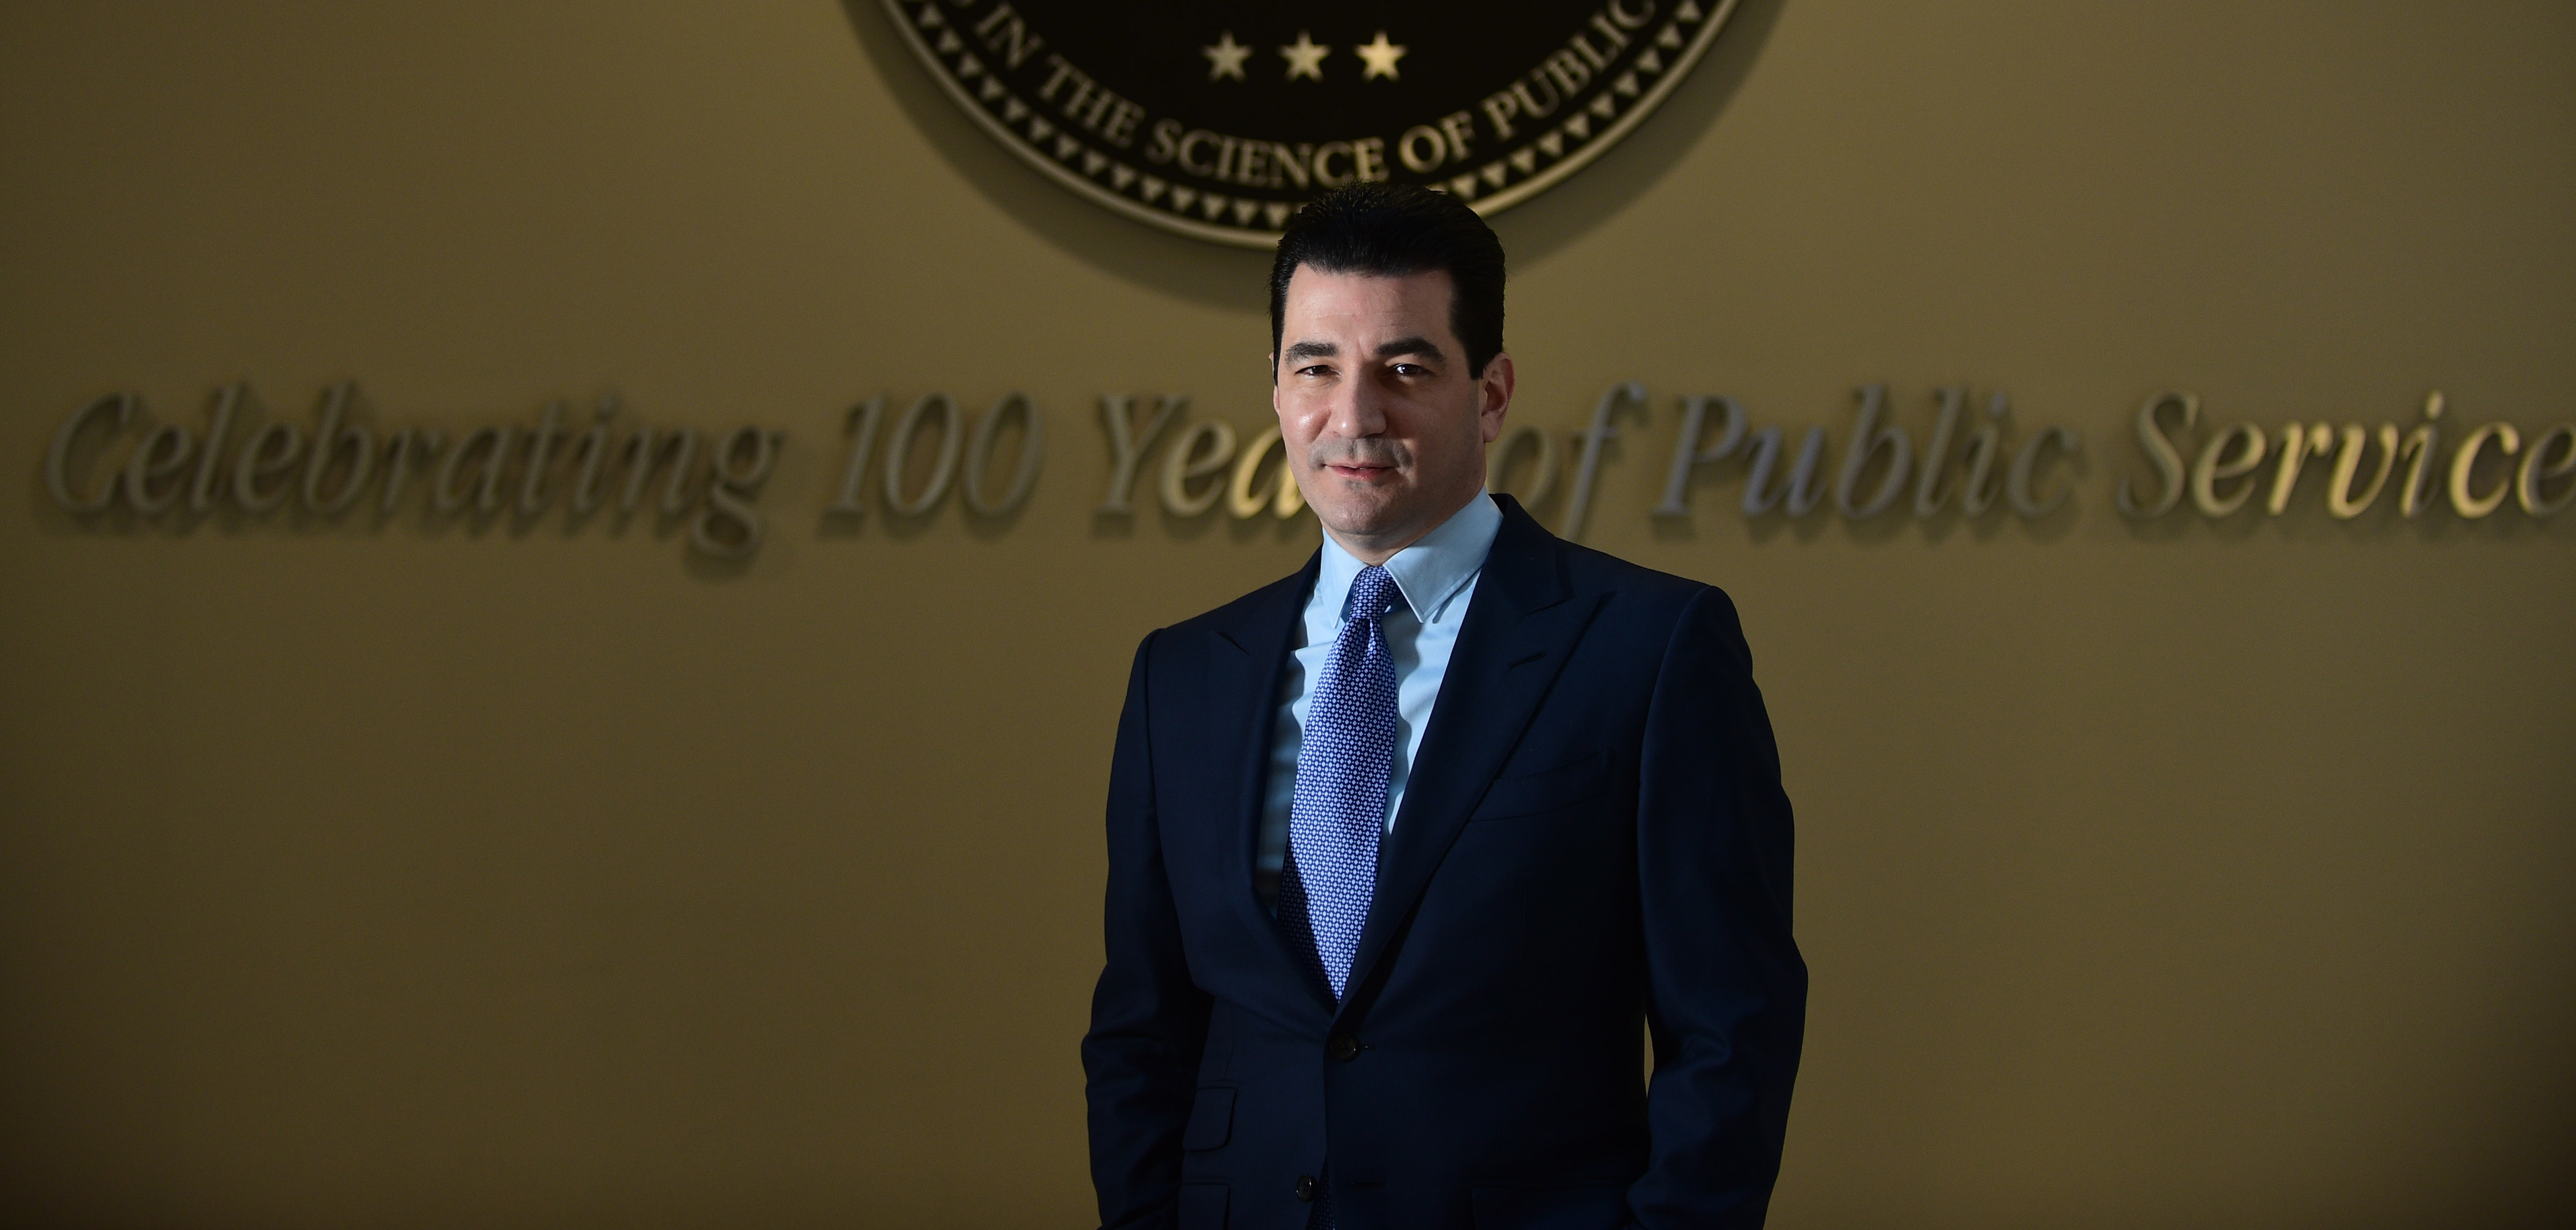 Scott Gottlieb, commissioner of the Food and Drug Administration, said Tuesday that the FDA would announce a major initiative this week to curb youth vaping and smoking. (Astrid Riecken for The Washington Post)